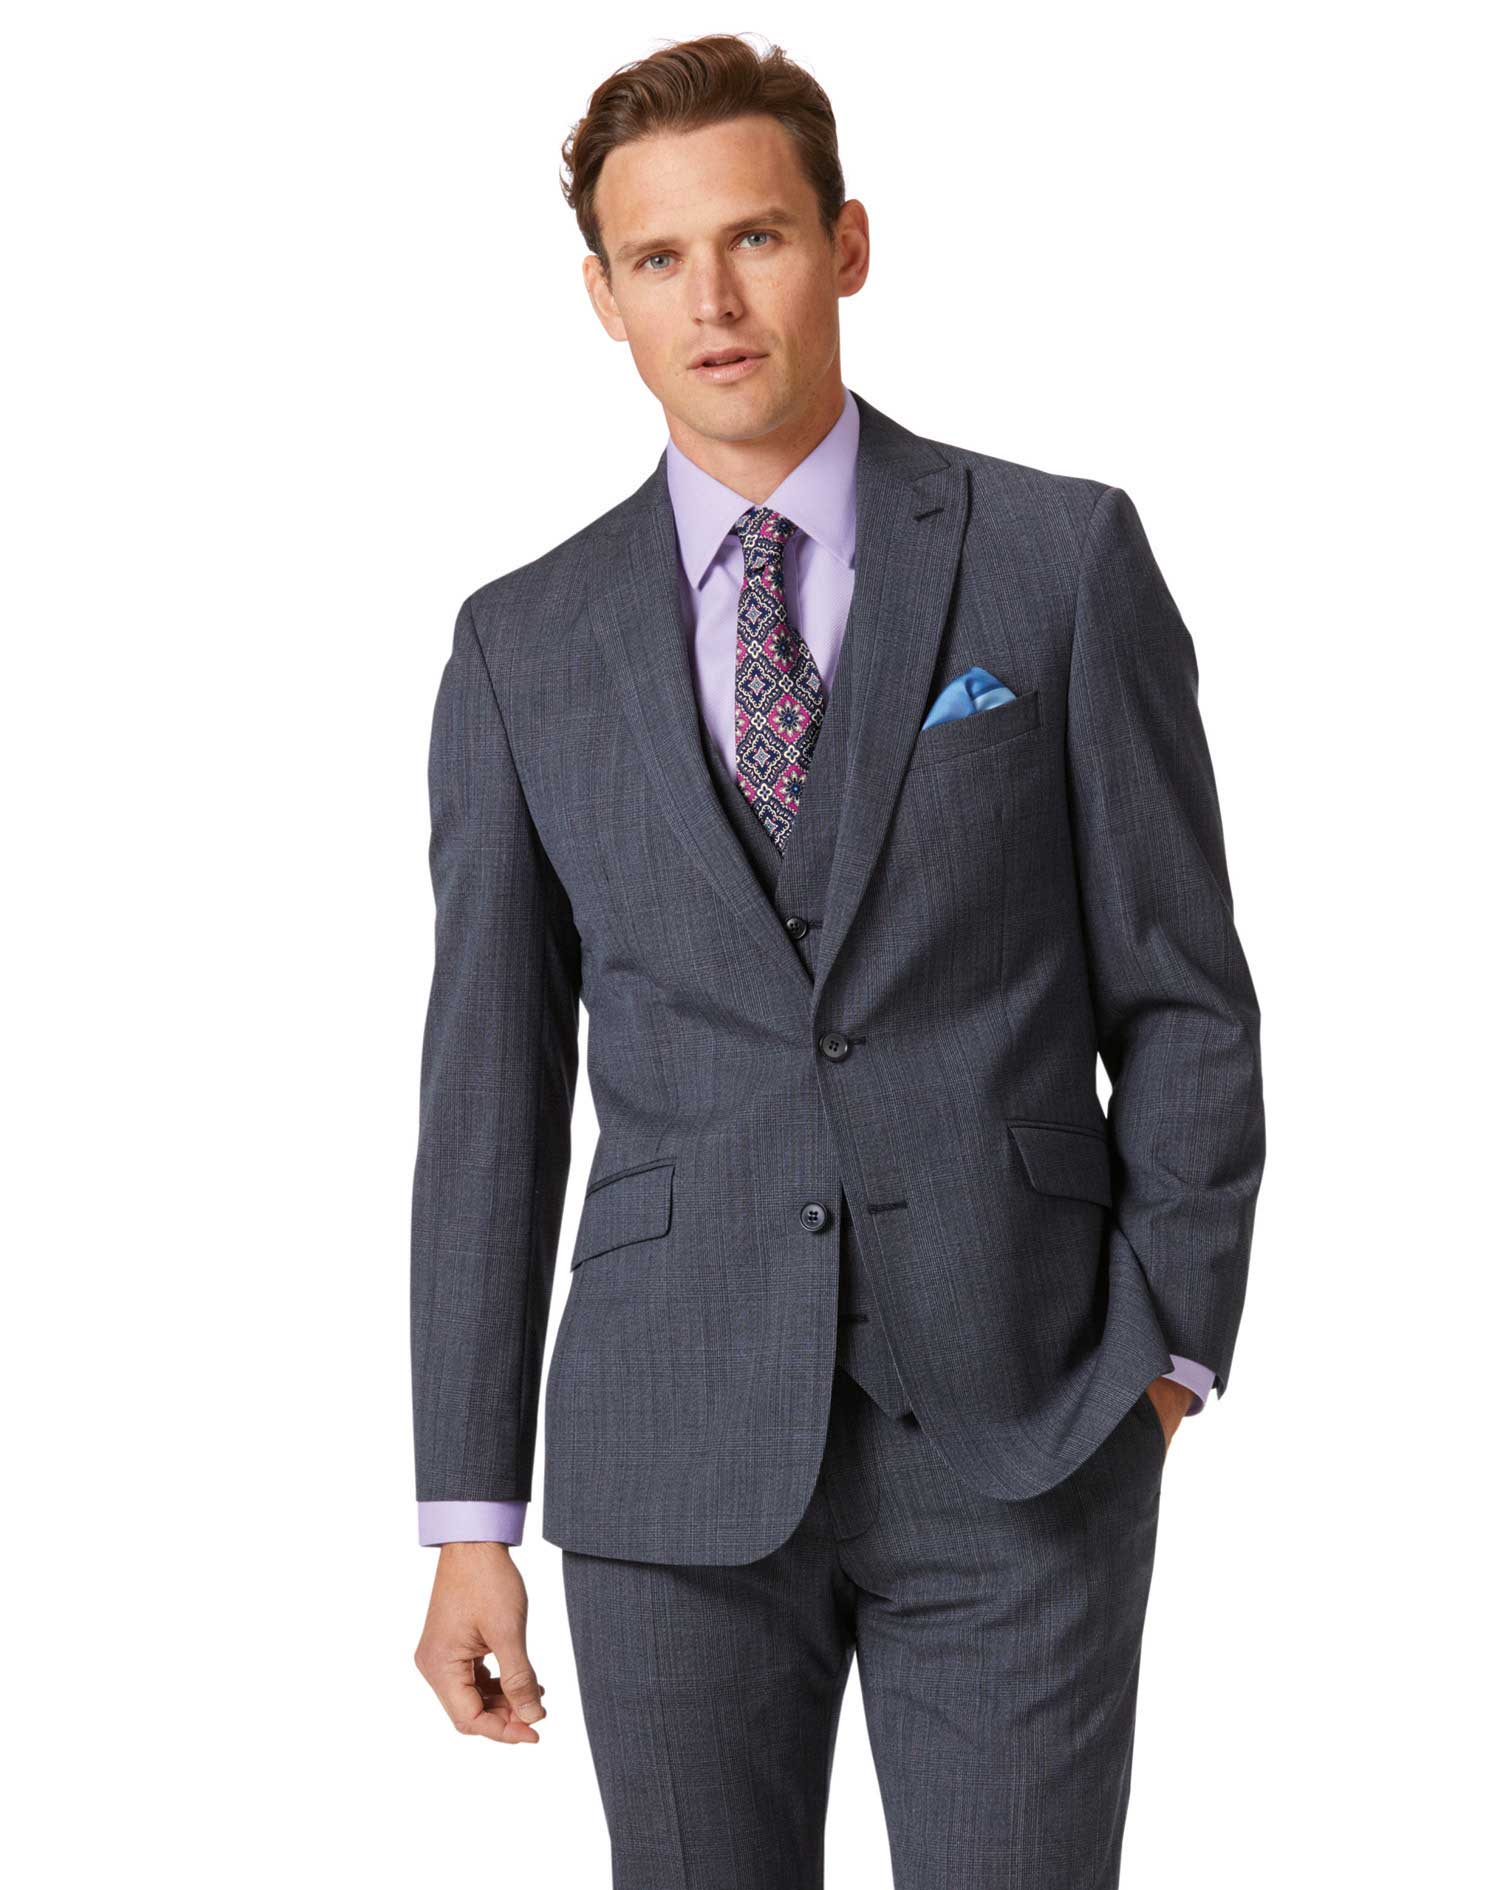 Airforce Blue Check Slim Fit Twist Business Suit Wool Jacket Size 38 Long by Charles Tyrwhitt